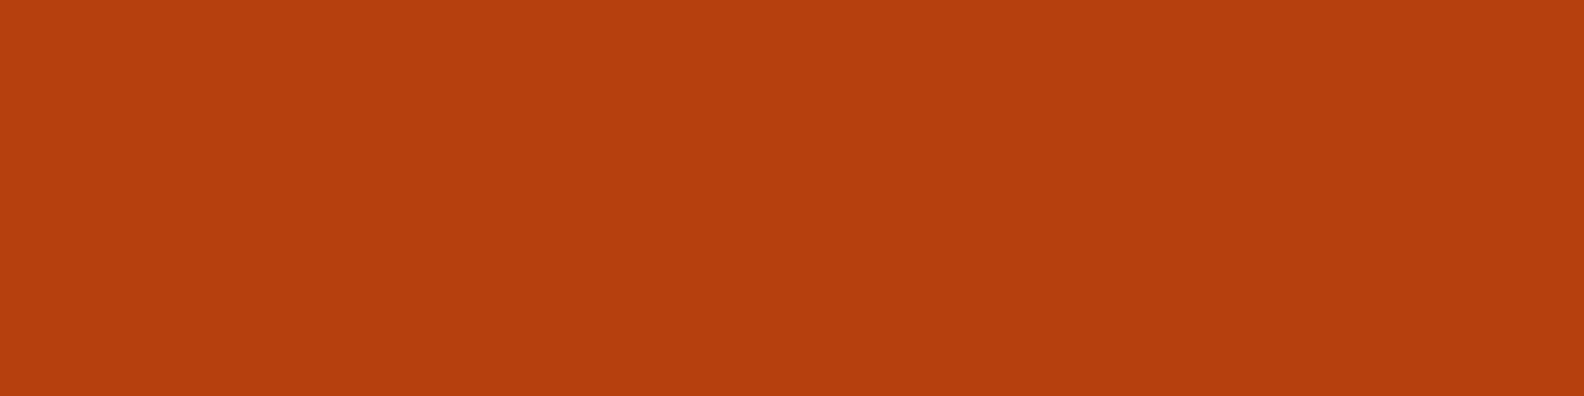 1584x396 Rust Solid Color Background